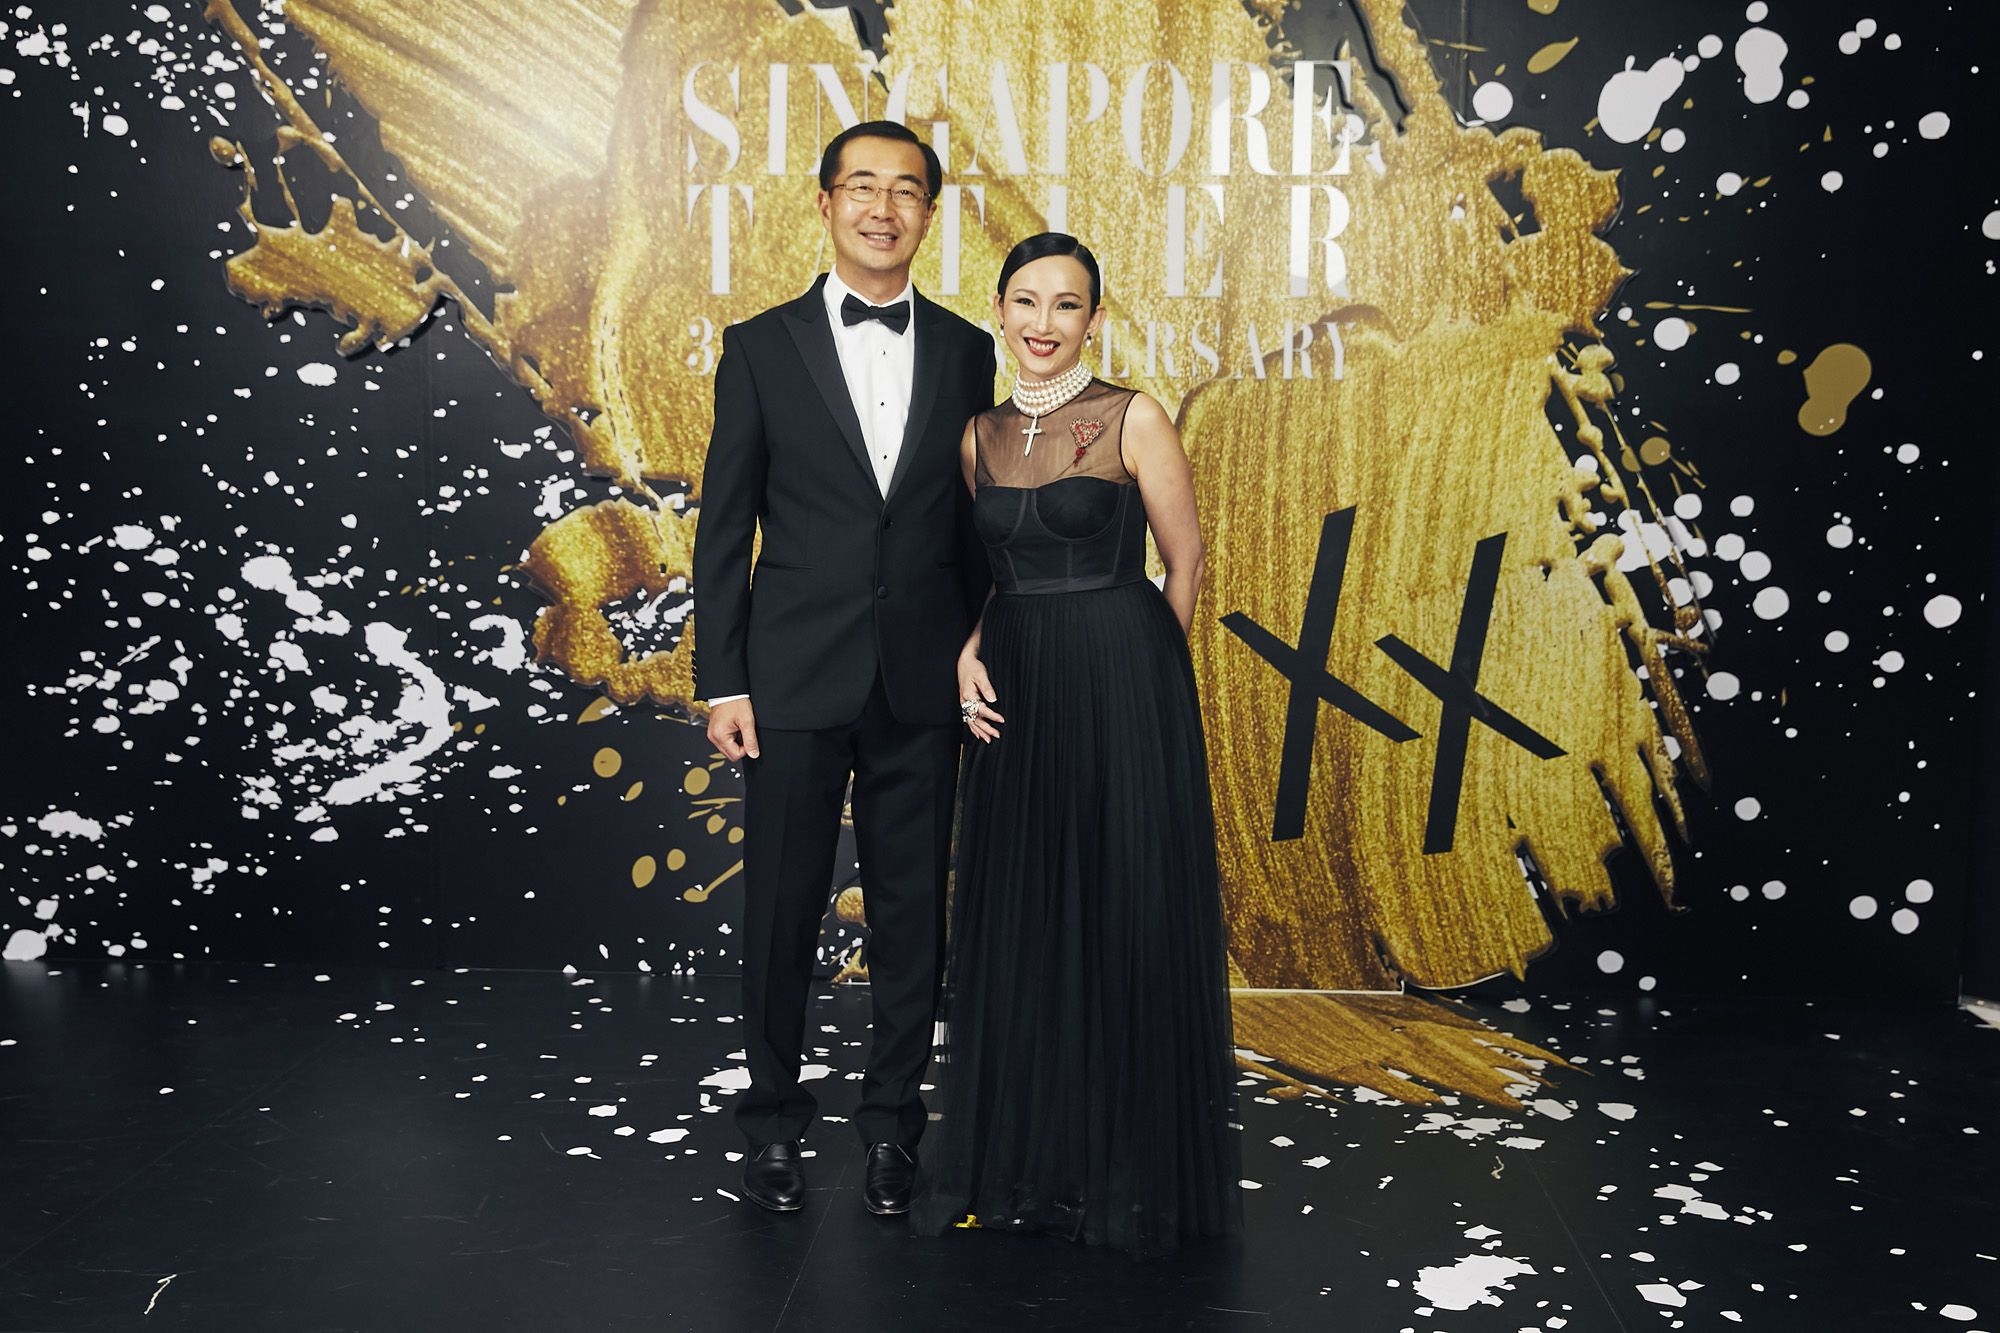 Caroline Heah in Dior, with Heah Sieu Min